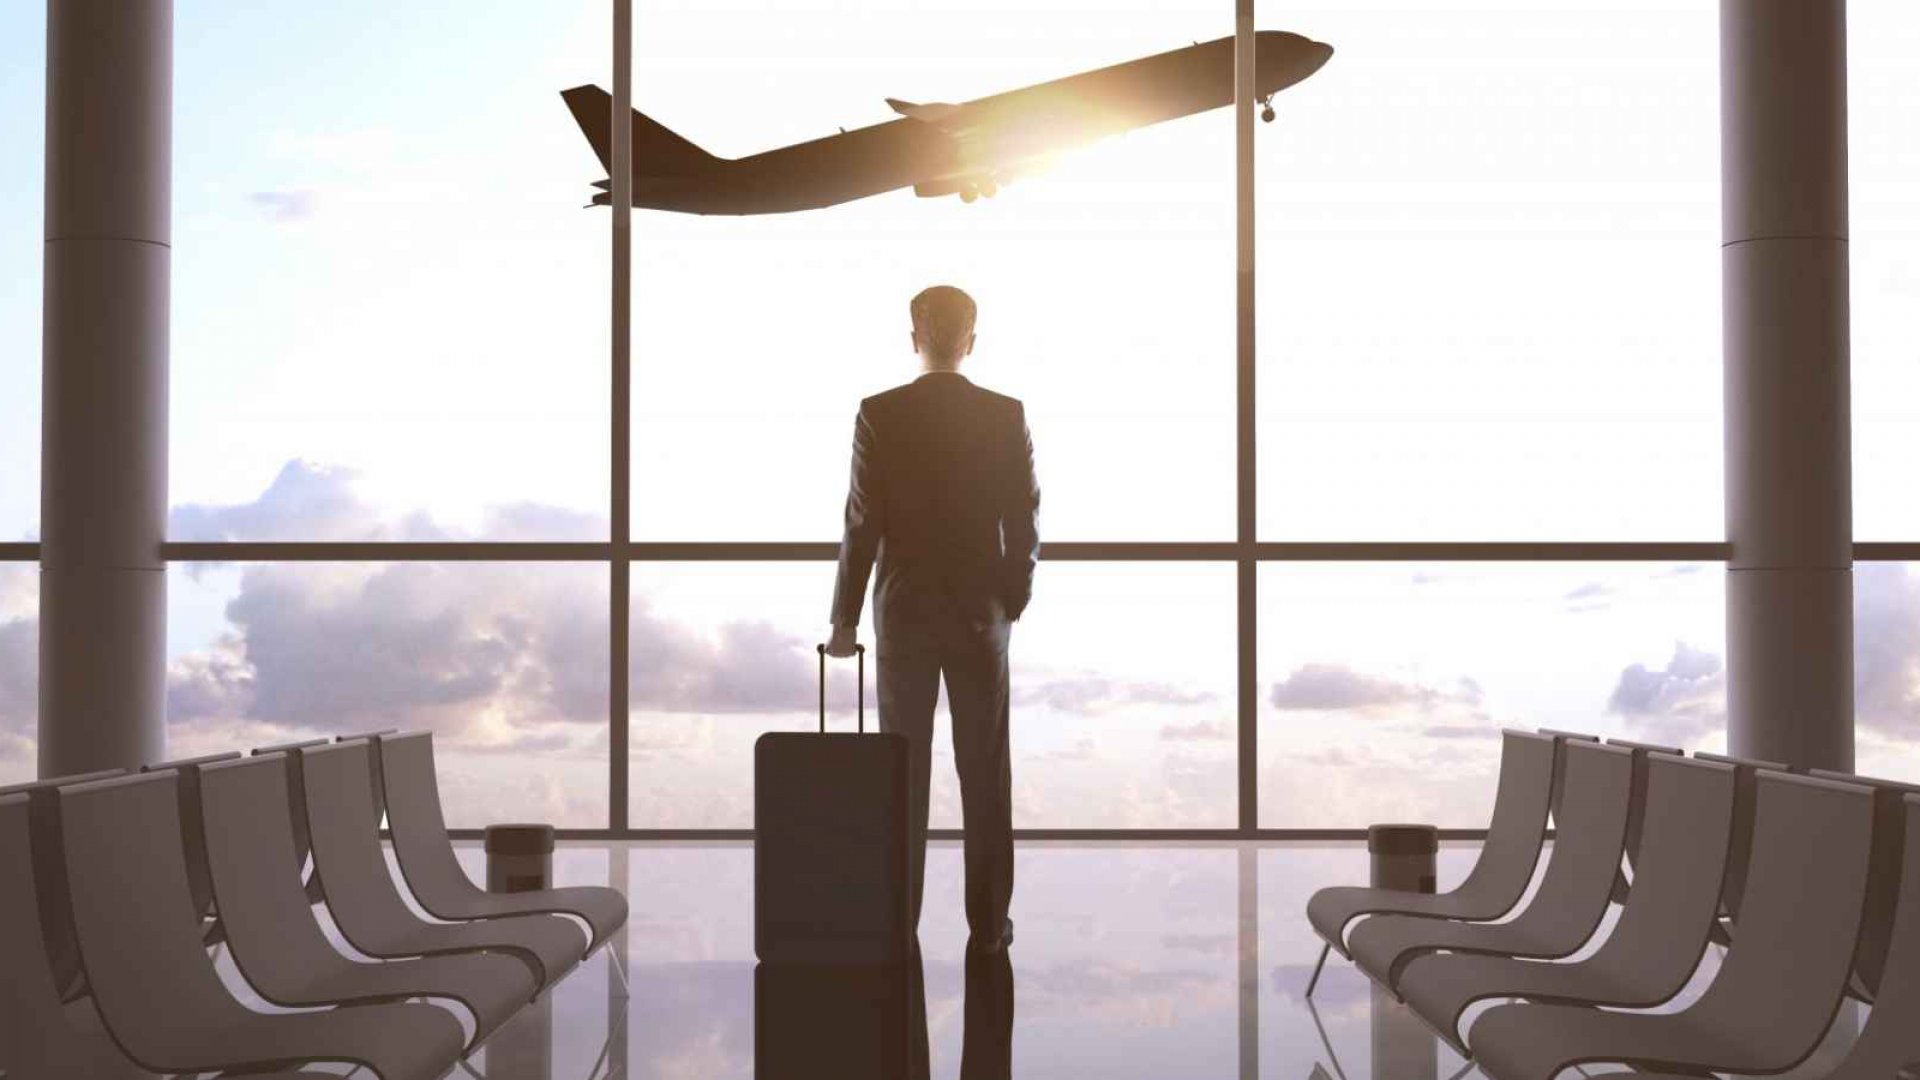 4 Unusual Travel Tips From Road Warrior CEOs